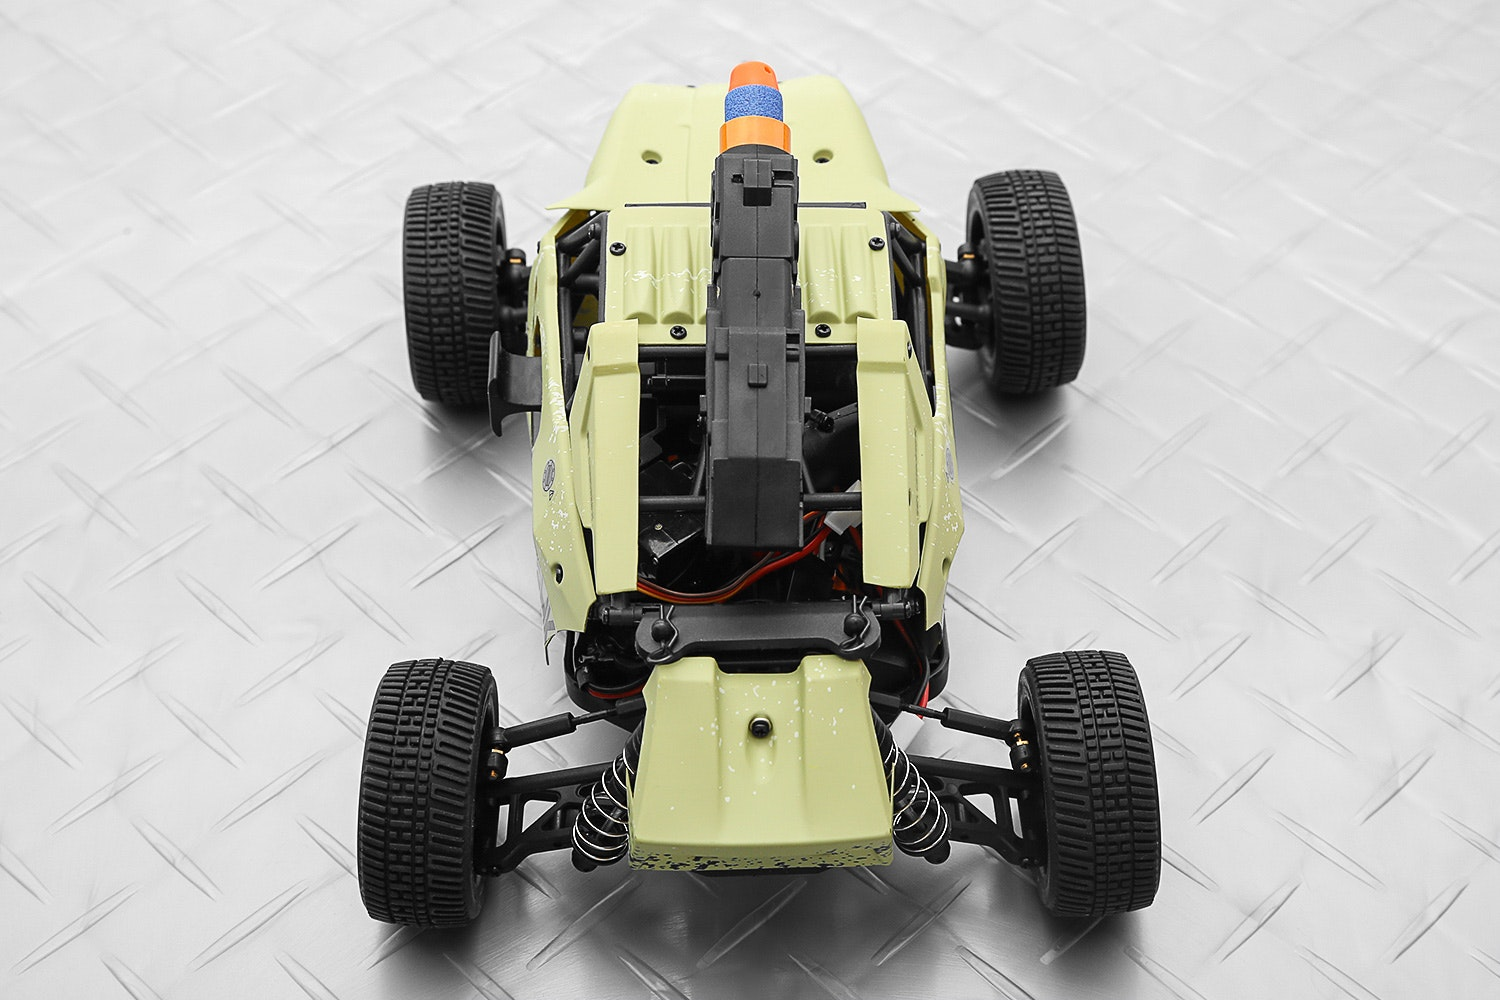 Dromida Wasteland Series 4.18 2.4ghz RTR